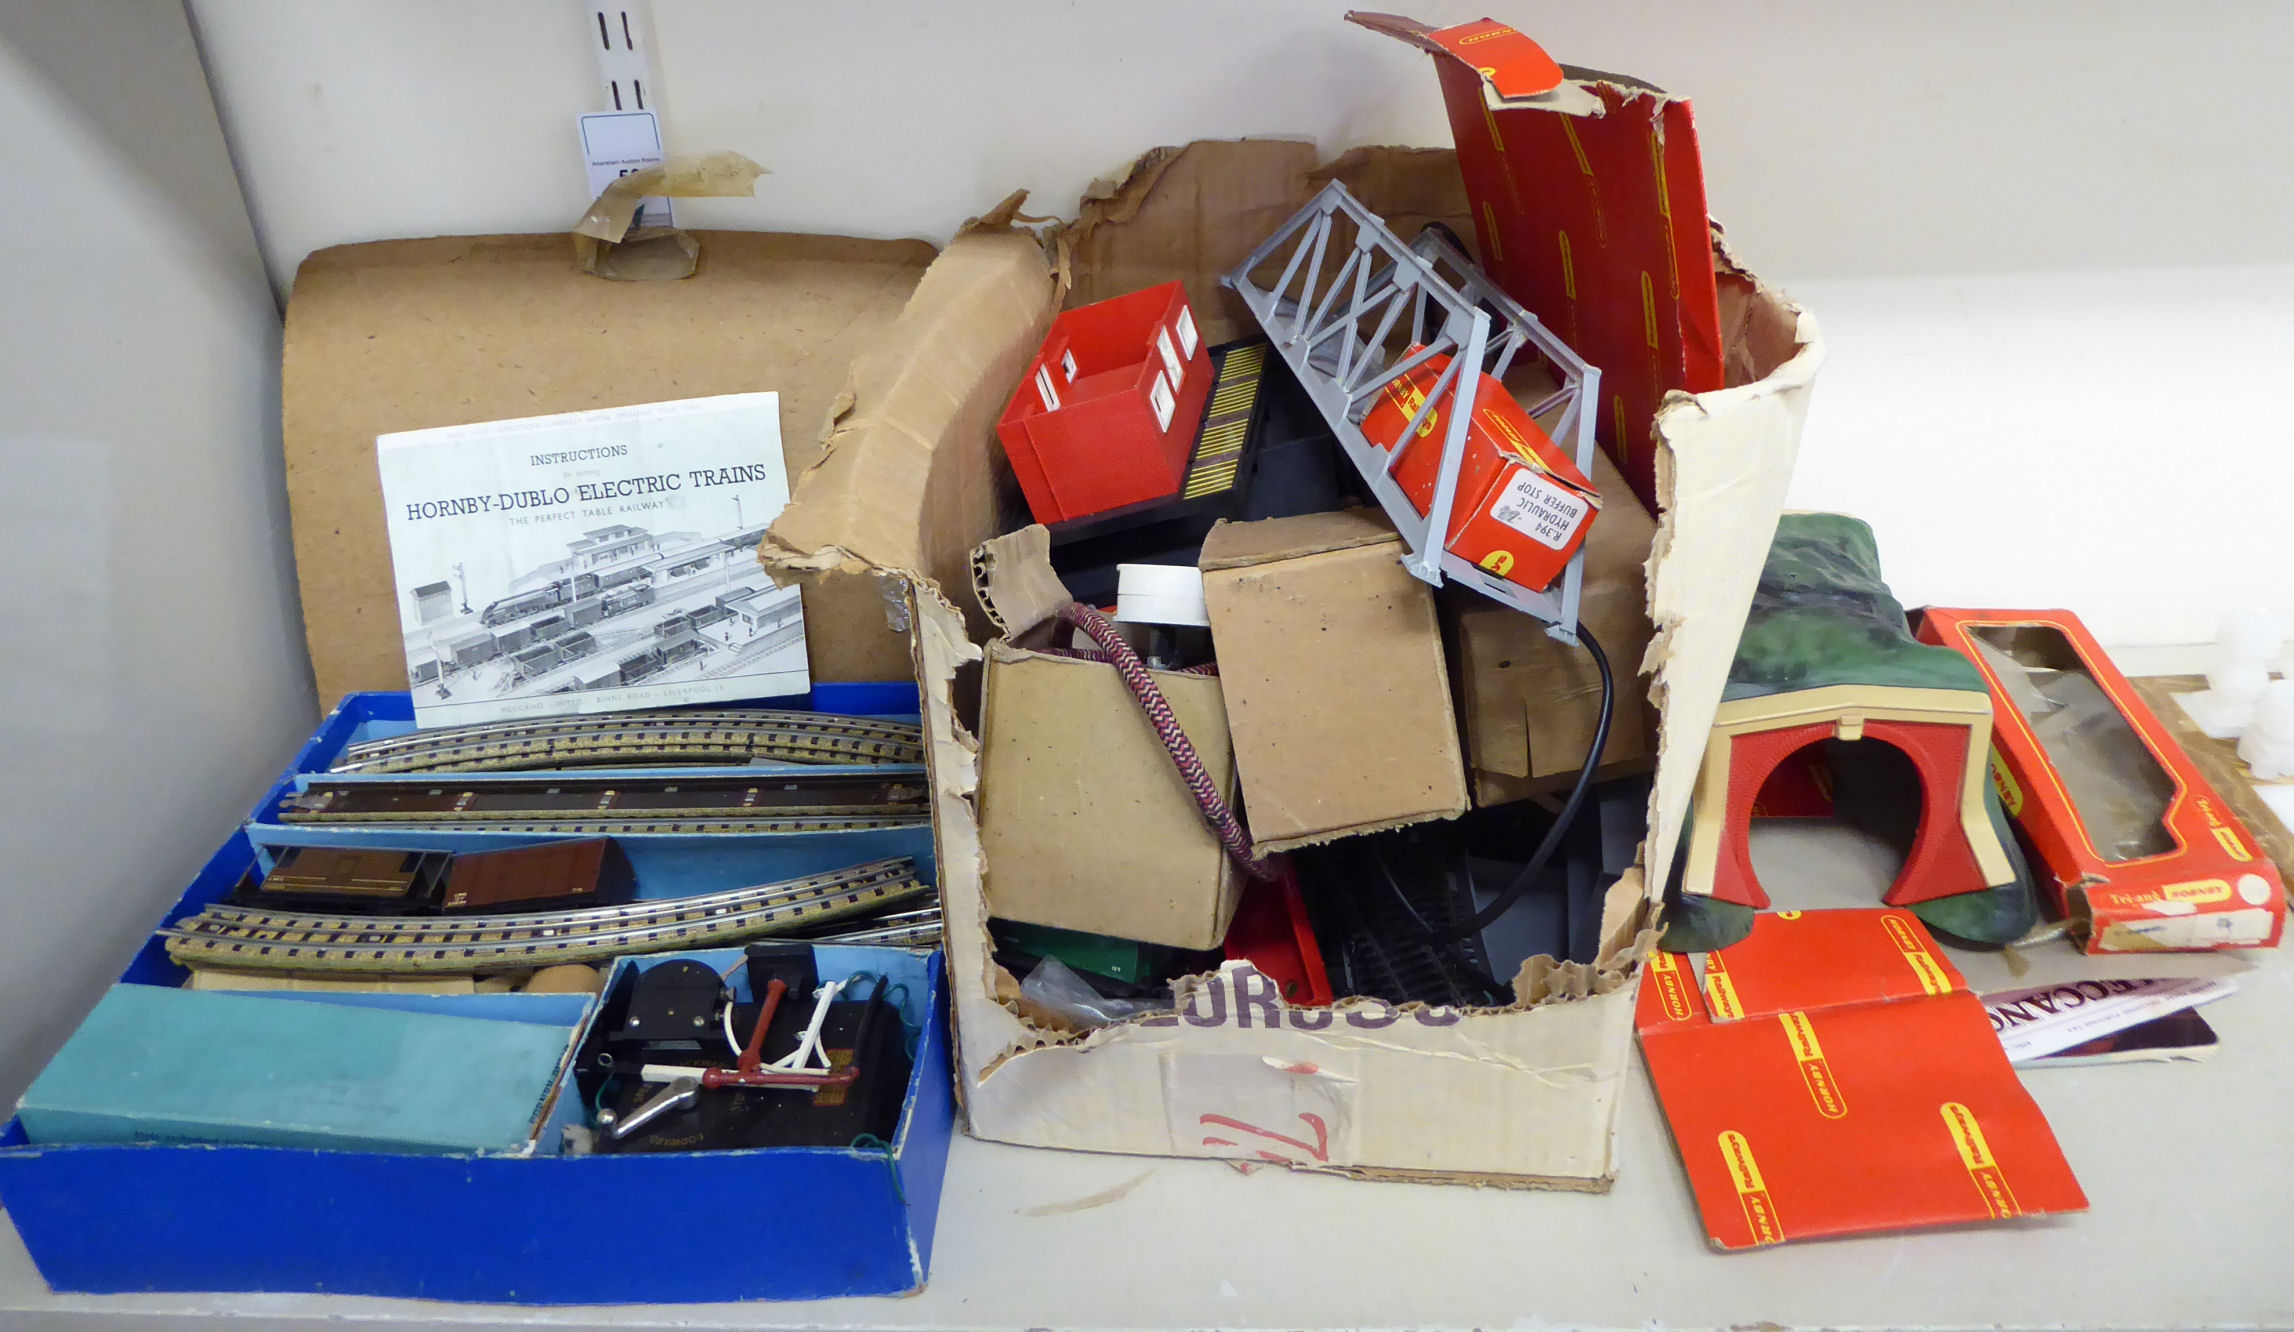 Lot 56 - A Tri-ang Hornby Dublo electric train set; and other components,